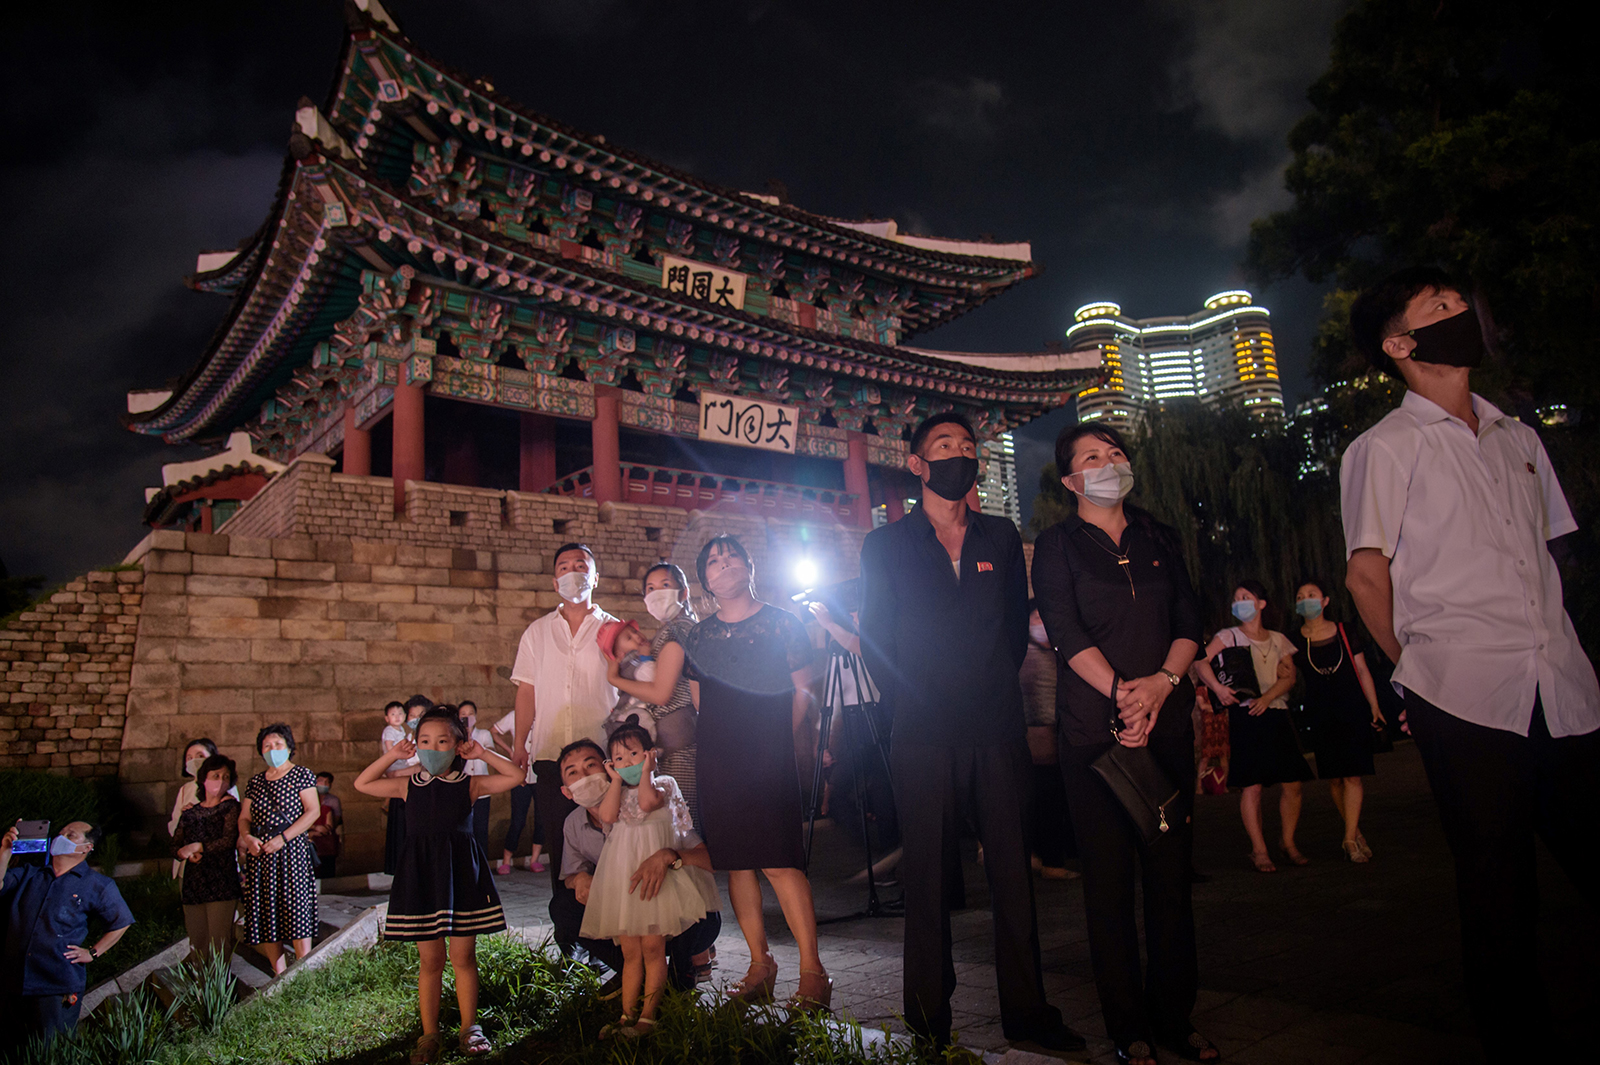 People stand at Taedongmun gate in Pyongyang to watch a firework display on July 27 to mark the 67th anniversary of the signing of the Korean War armistice agreement.